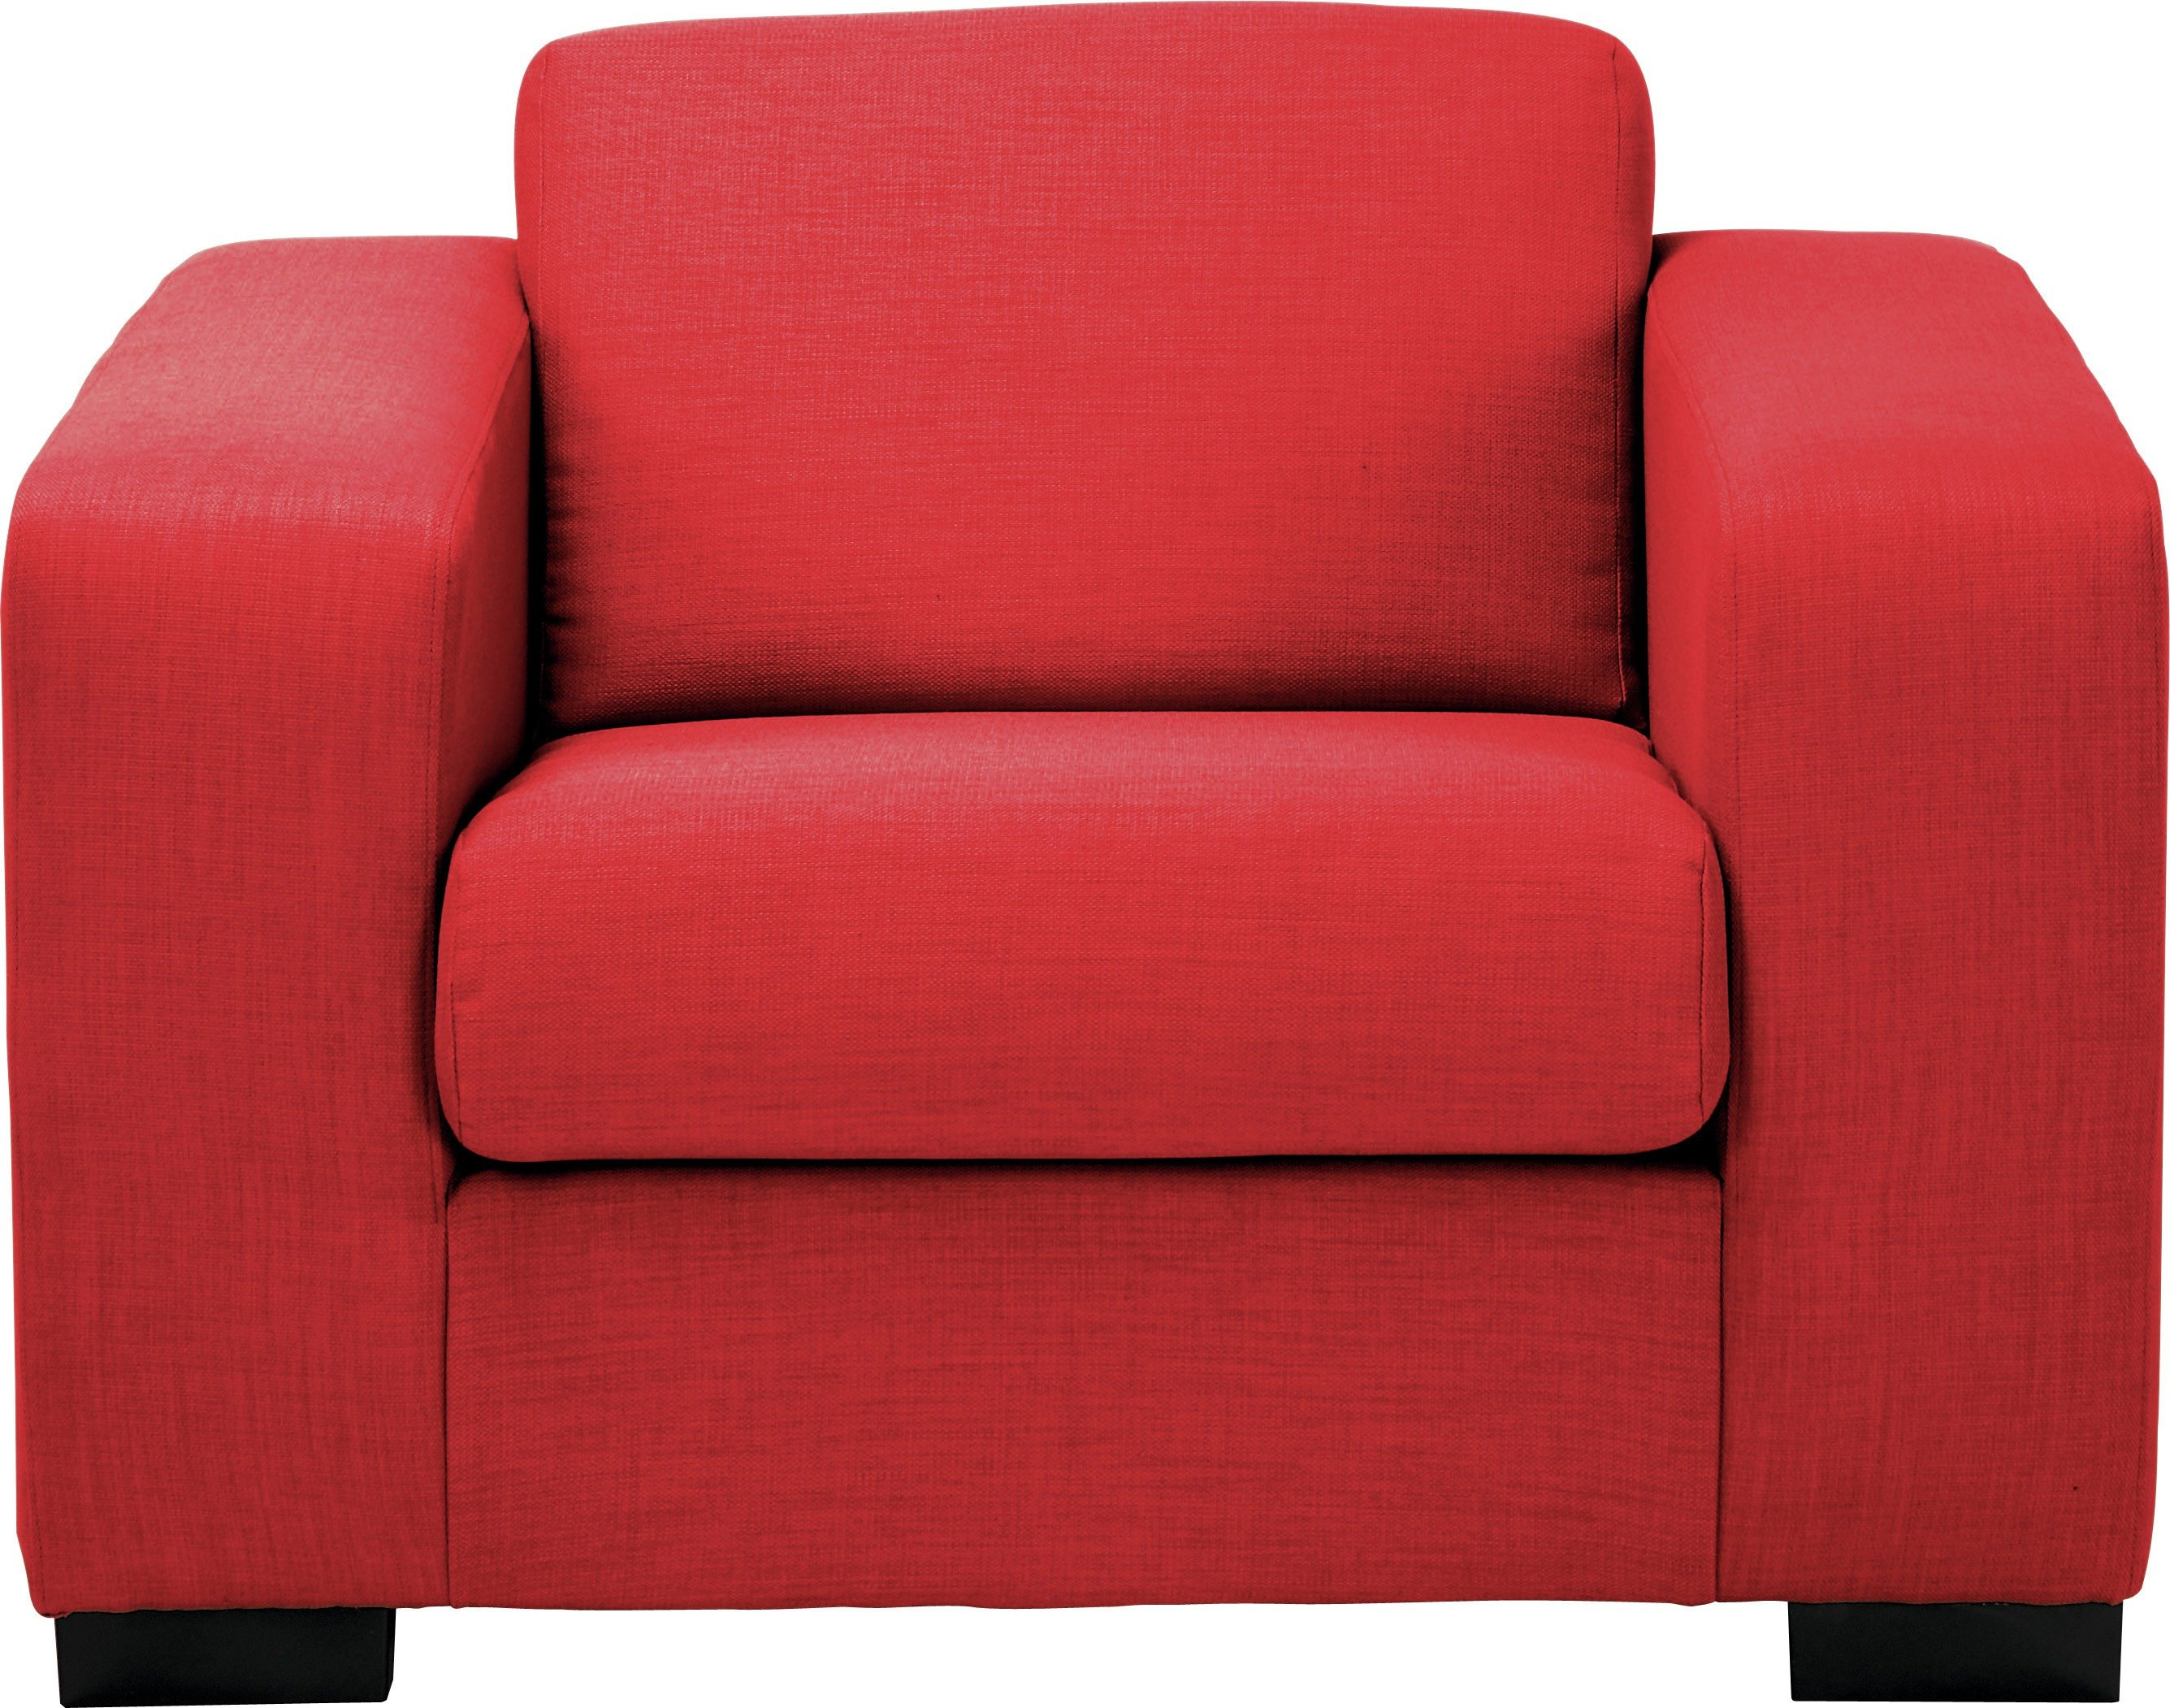 Image of Hygena - New Ava - Fabric Chair - Red